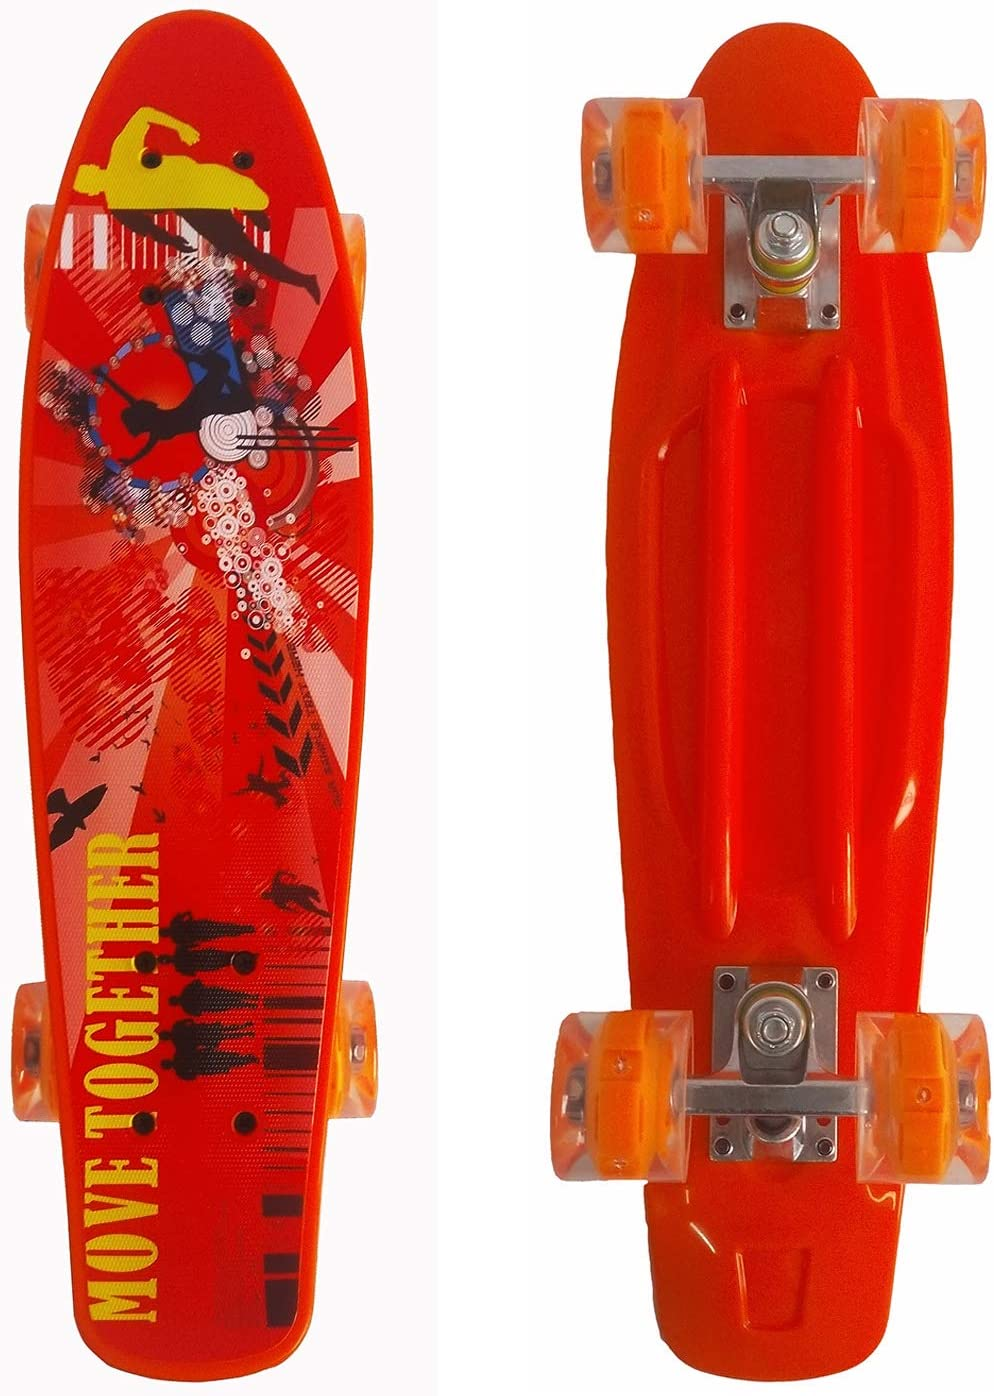 Runyi 22//24//27 Inches Mini Cruiser Skateboard Complete for Beginners Professional,Plastic Cruiser with Colorful LED Light PU Wheels,Gift for Boys Girls Kids Youths Teens Adult